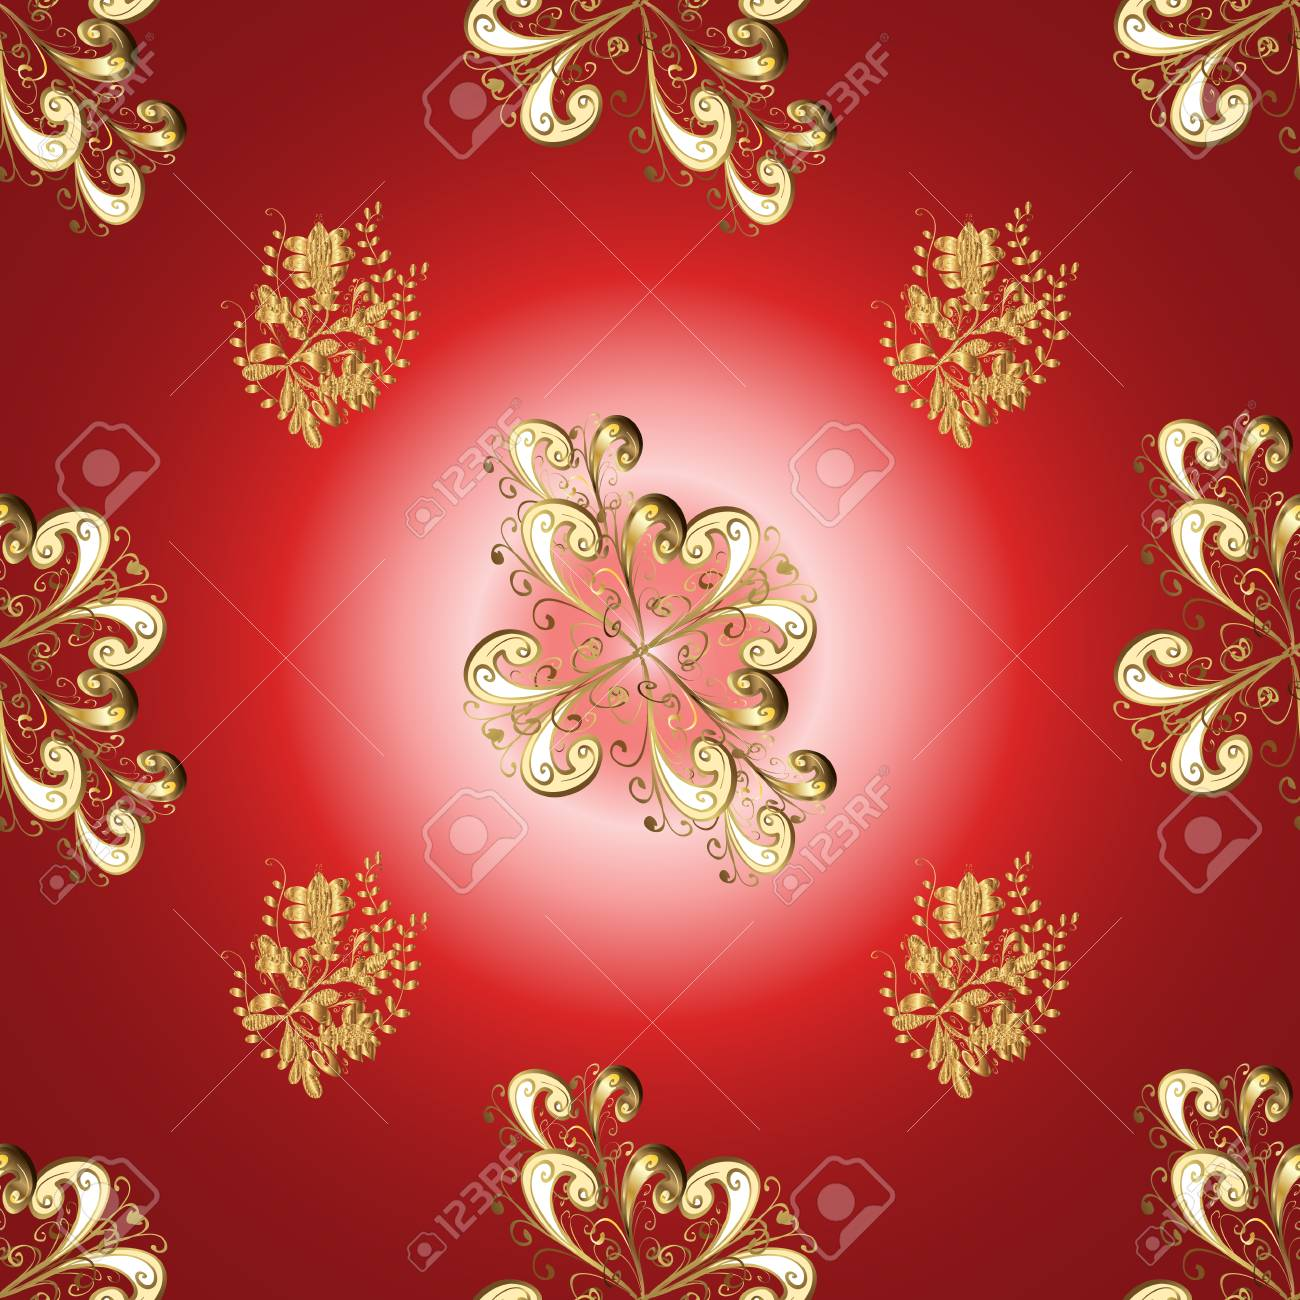 Gold Floral Ornament In Baroque Style Golden Element On Red